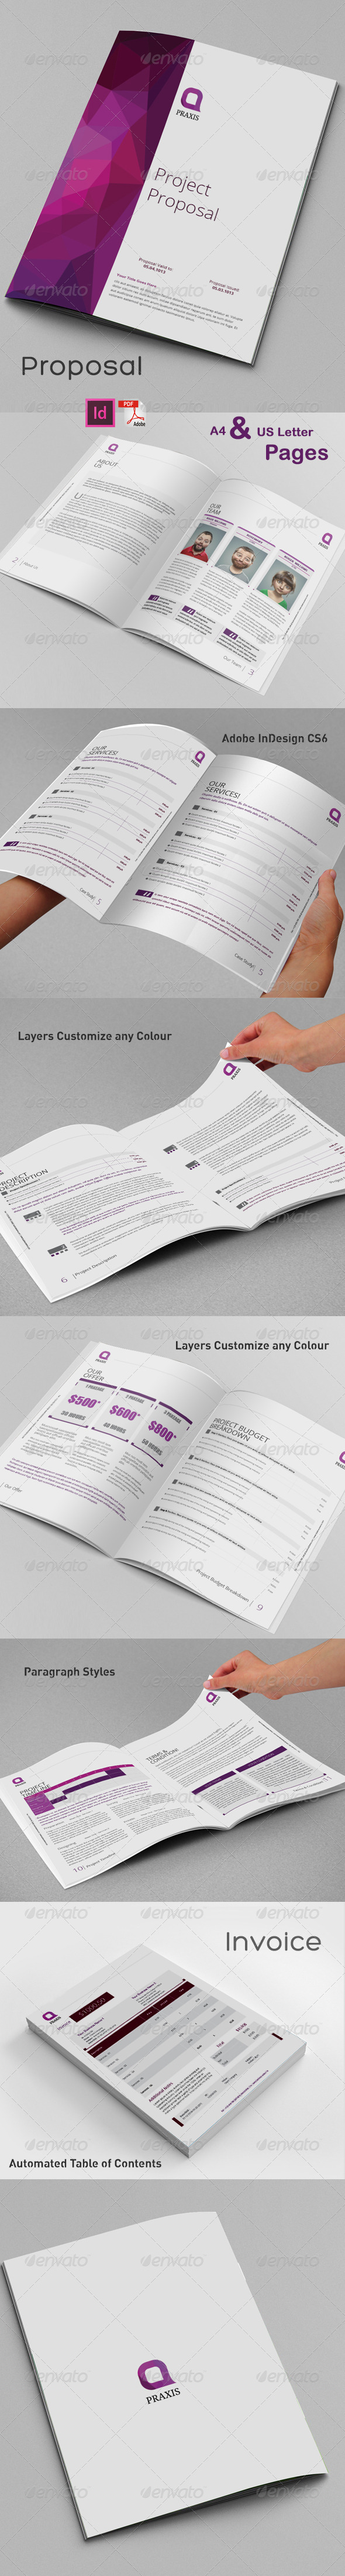 GraphicRiver Proposal Template 8540573